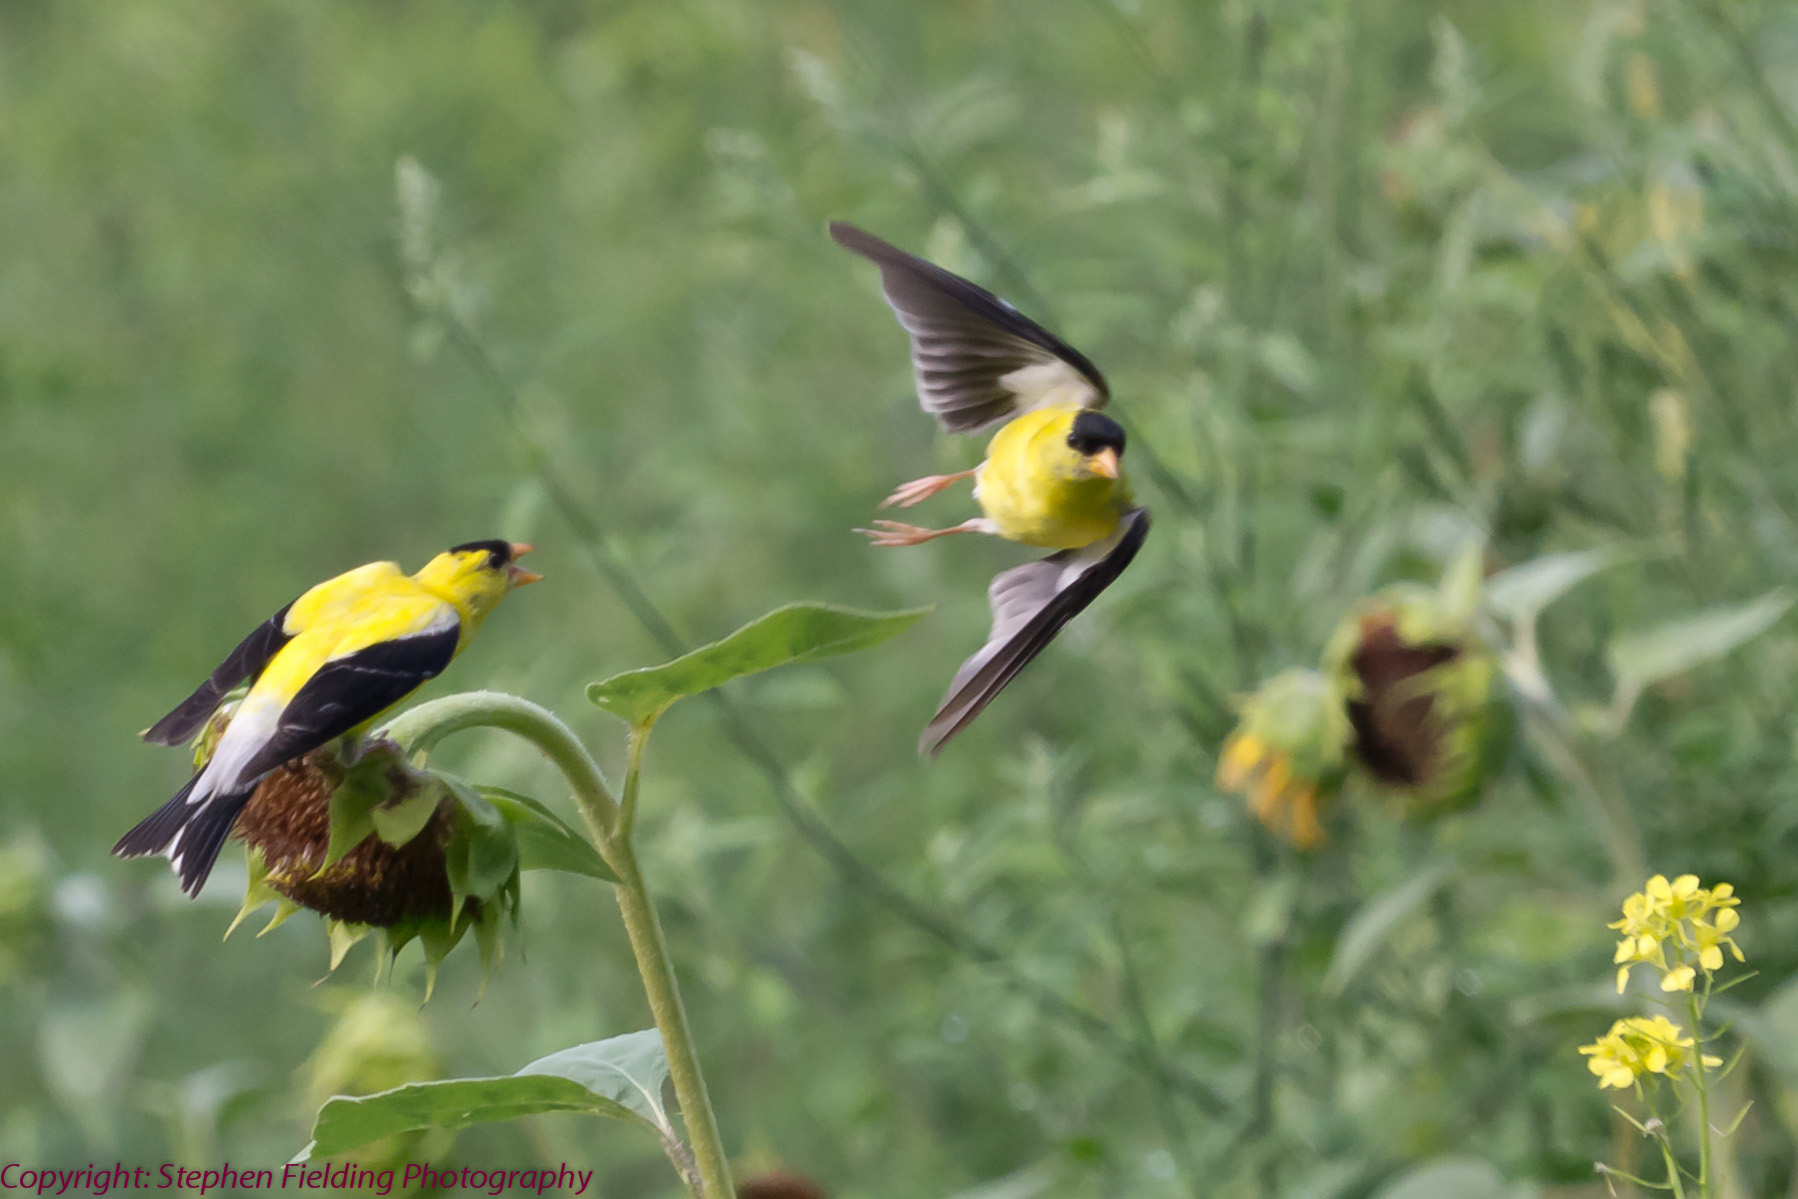 Competition in the sunflower field